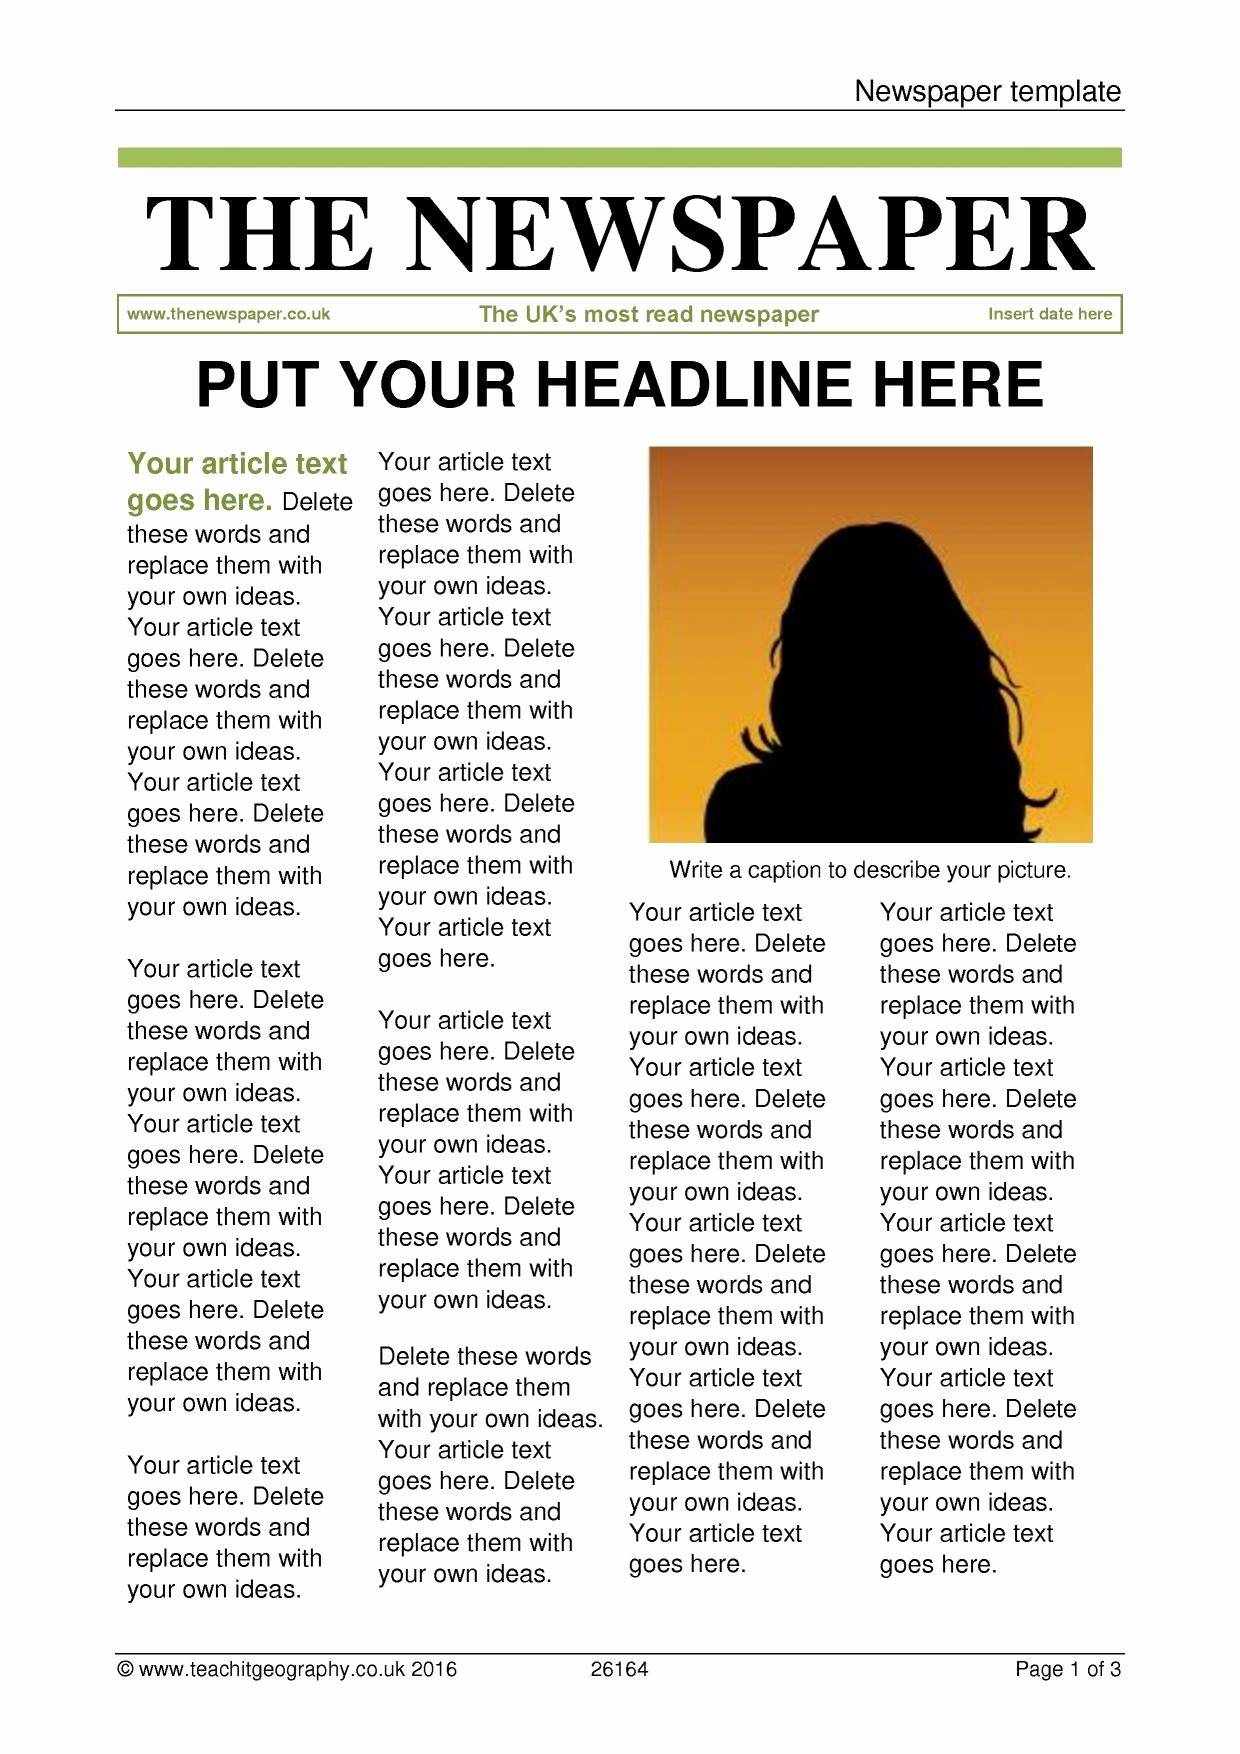 Microsoft Word Newspaper Article Template Beautiful Newspaper Template